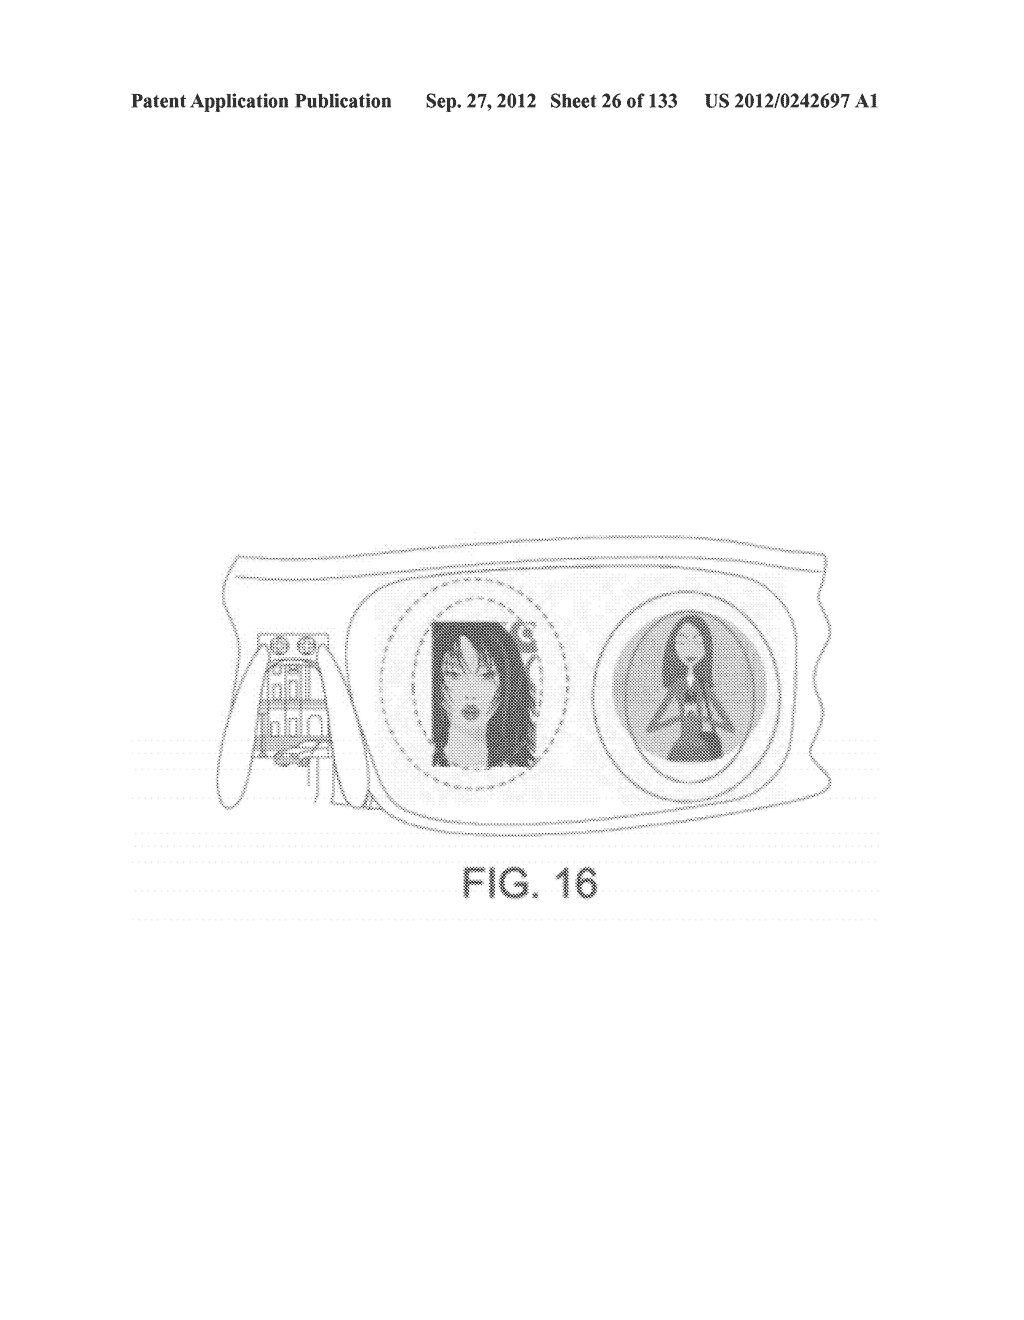 SEE-THROUGH NEAR-EYE DISPLAY GLASSES WITH THE OPTICAL ASSEMBLY INCLUDING     ABSORPTIVE POLARIZERS OR ANTI-REFLECTIVE COATINGS TO REDUCE STRAY LIGHT - diagram, schematic, and image 27